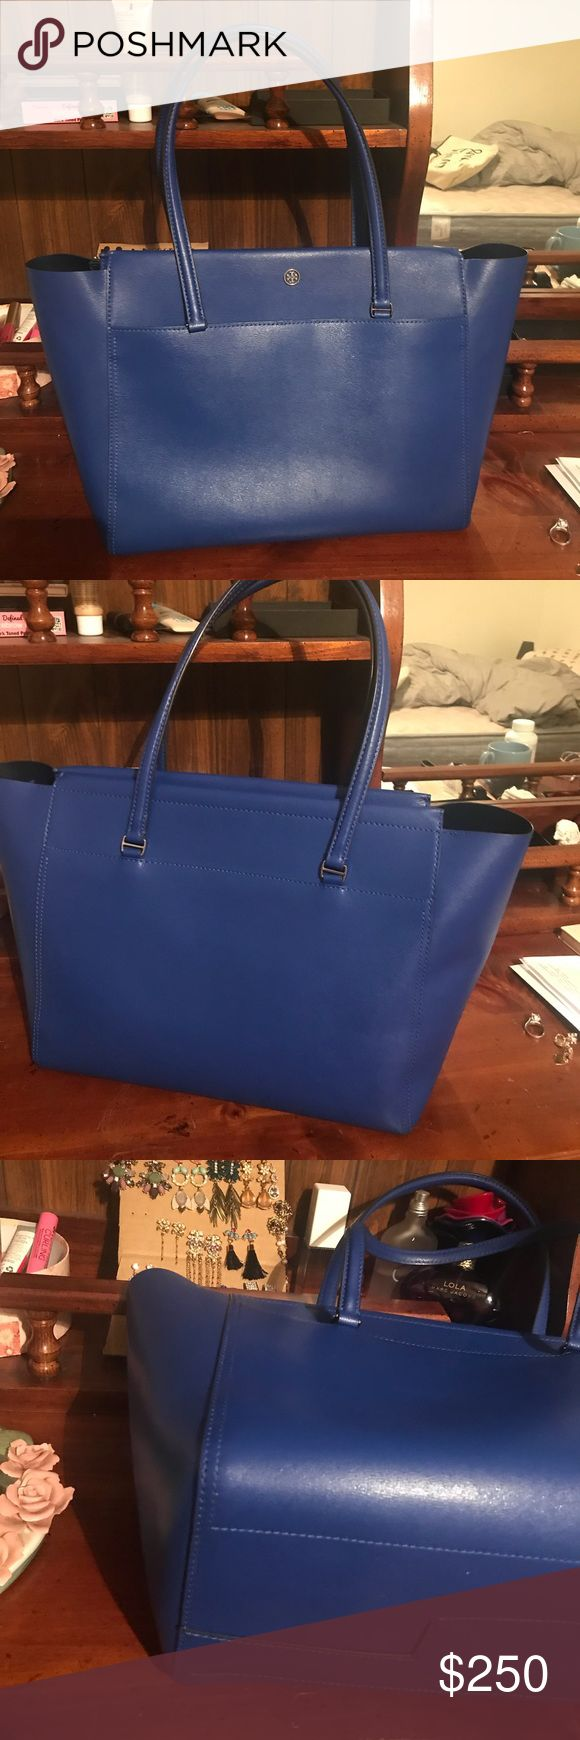 """Like new Tory Burch large parker tote SIZE INFO 13 ½""""W x 11 ¼""""H x 6 ½""""D. (Interior capacity: large.) 8 ½"""" strap drop. 2.1 lbs. DETAILS & CARE A bag that can keep up with you and look super-chic? It's a win-win. Top zip closure Exterior magnetic slip pocket Interior zip pocket; four wall pockets Leather lining Leather Tory Burch Bags Totes"""